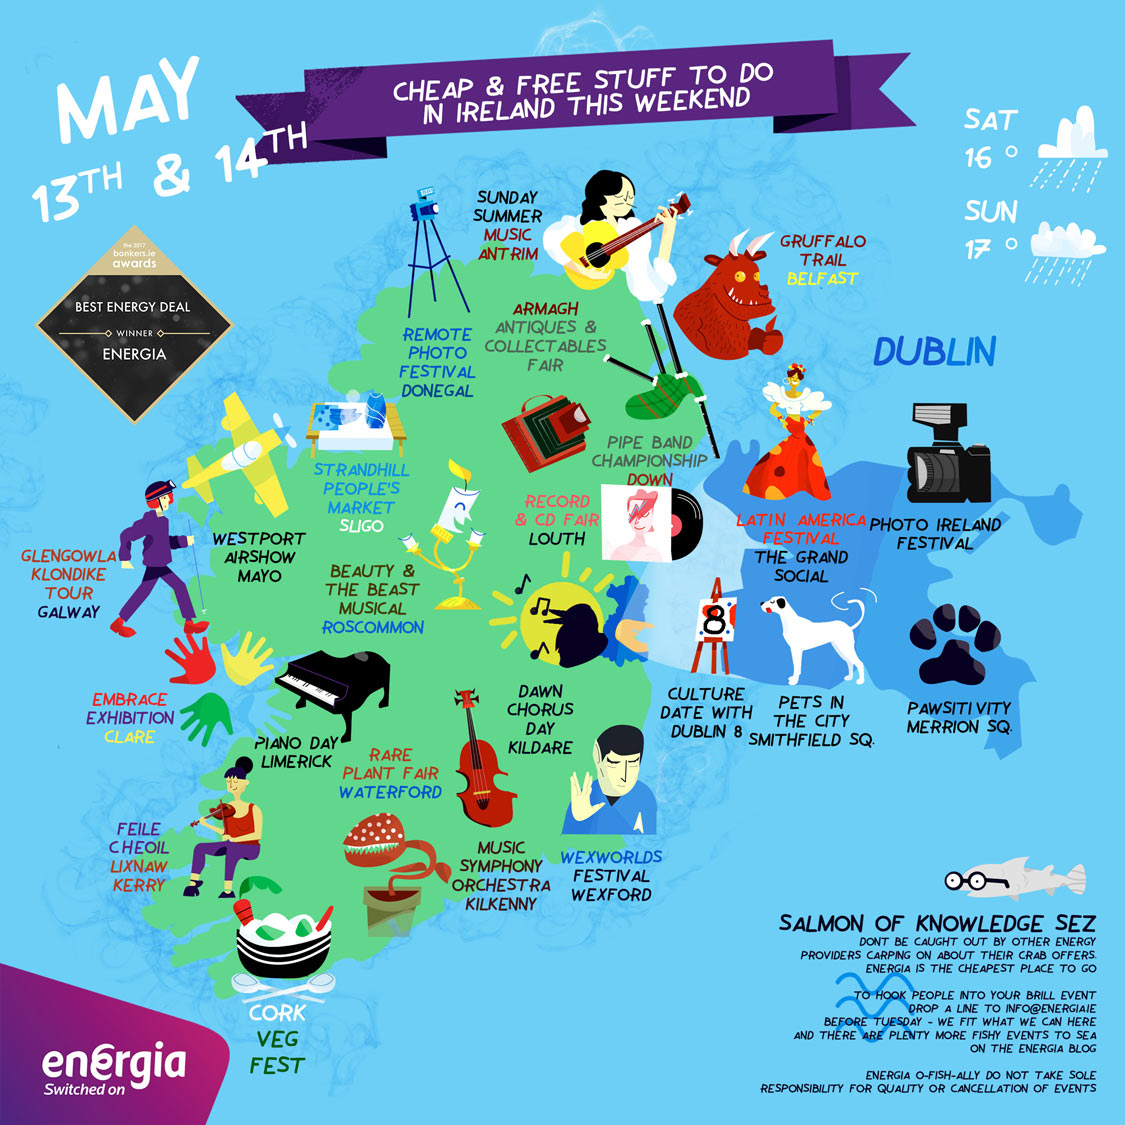 Clever Map of cheap and free things to do this weekend 13th -14th May